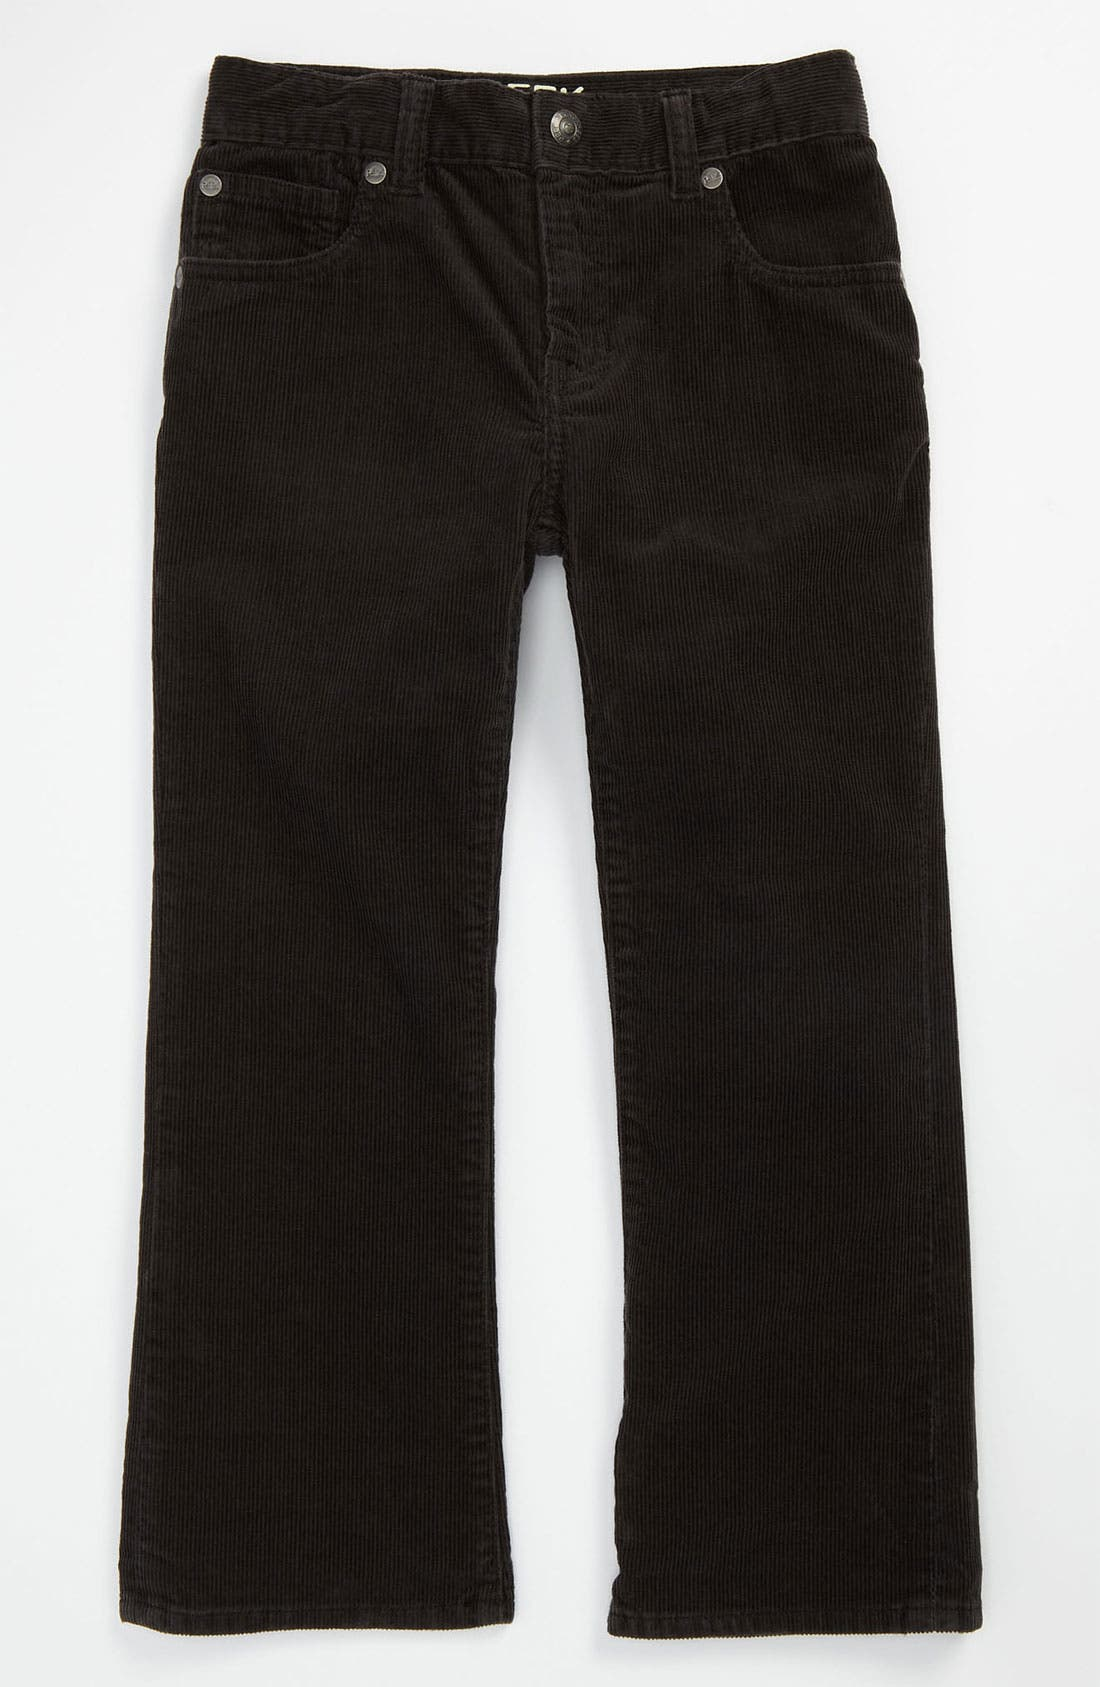 Alternate Image 1 Selected - Peek 'Sullivan' Corduroy Jeans (Toddler, Little Boys & Big Boys)